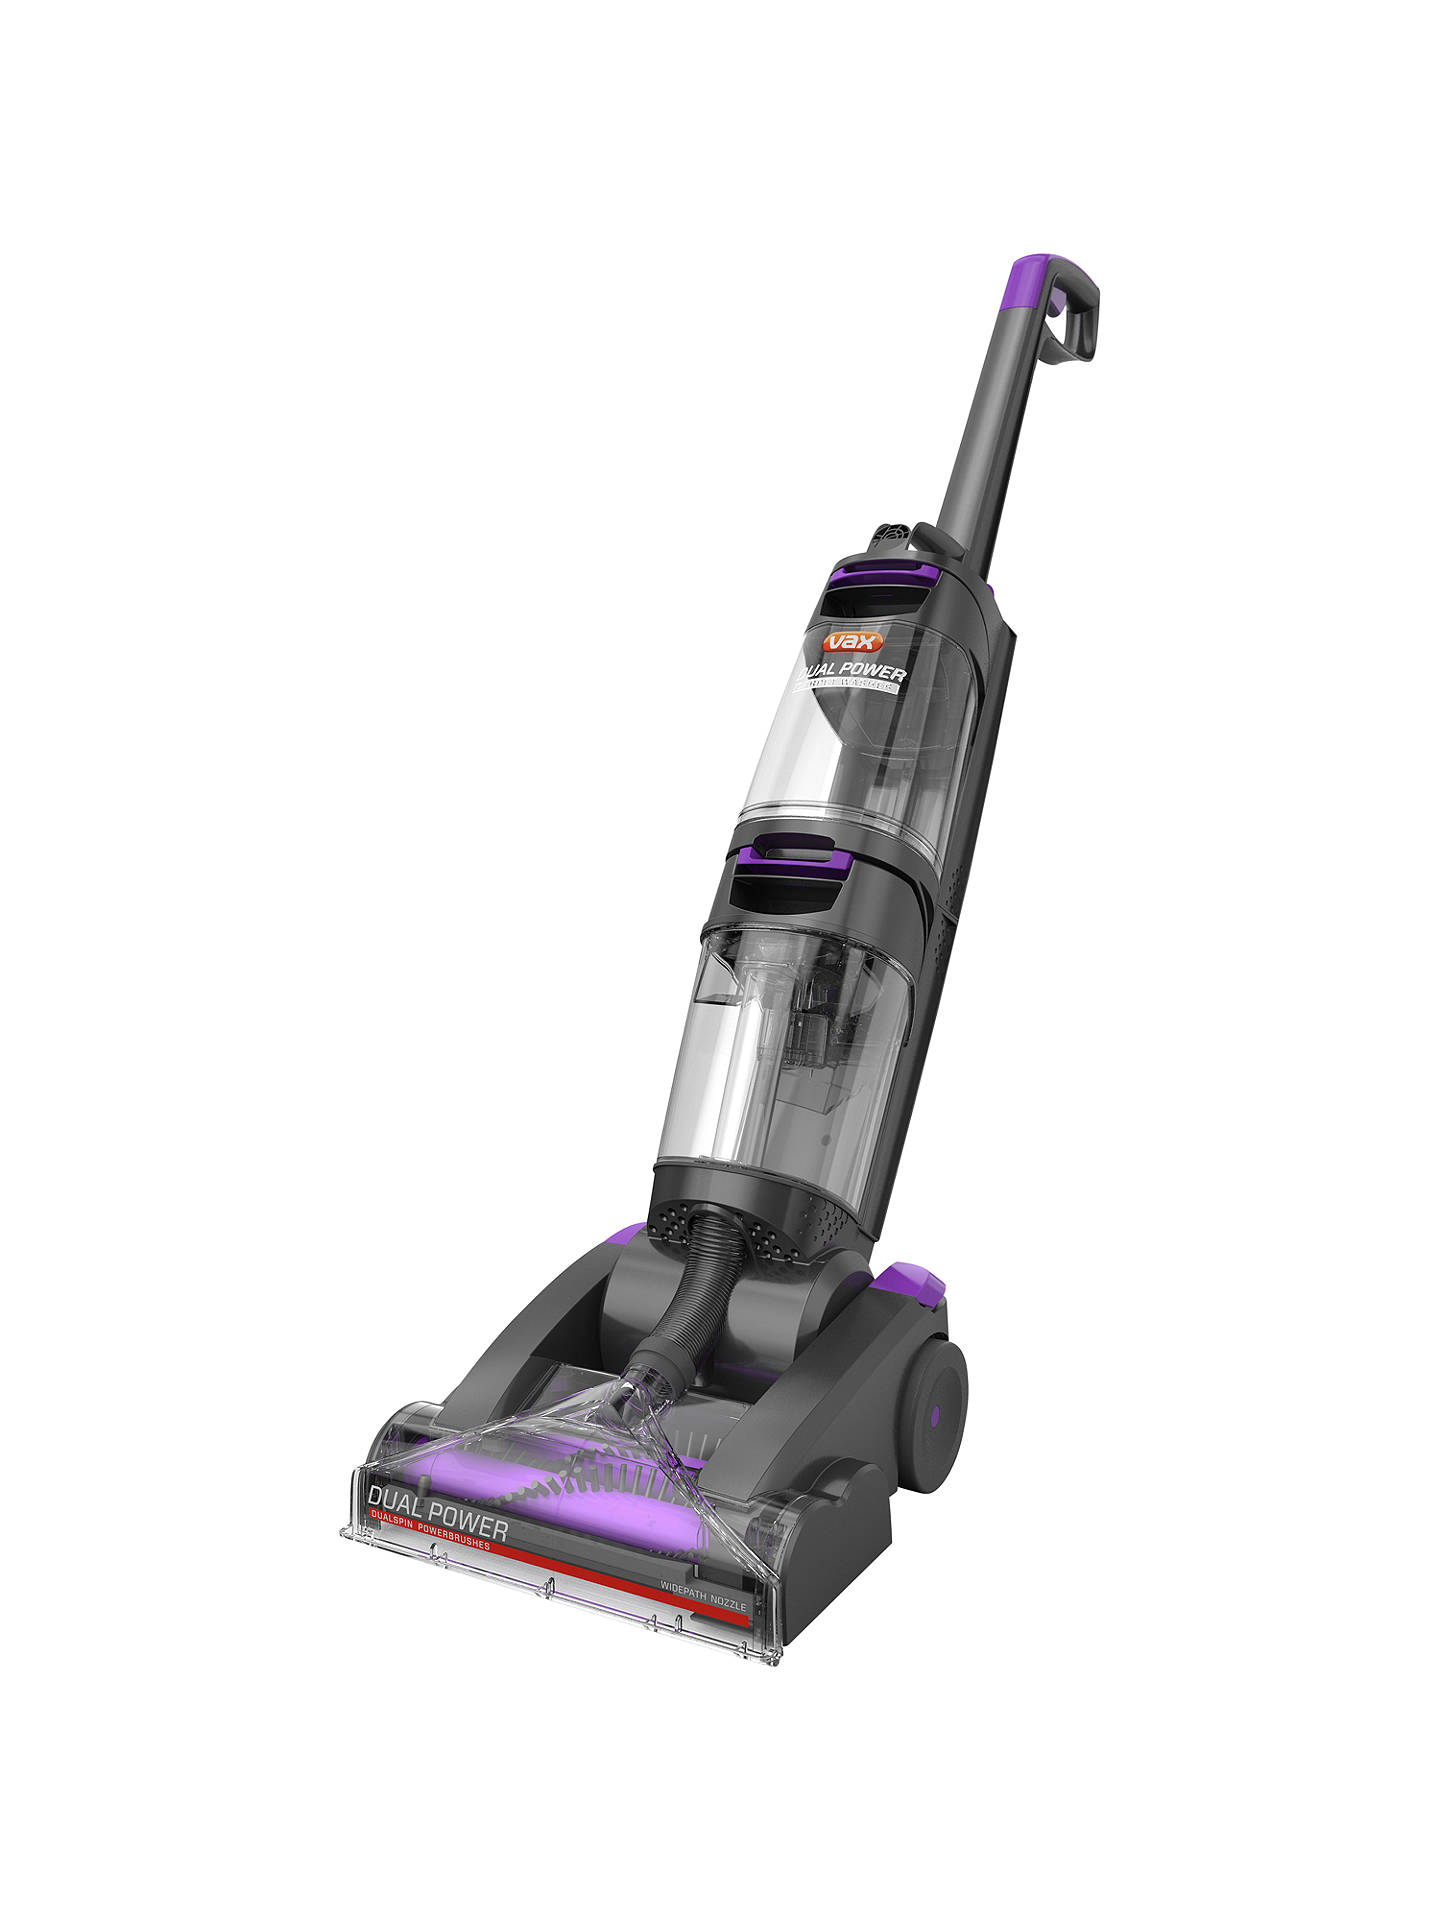 Vax Dual Power Plus Carpet Cleaner Instructions Www